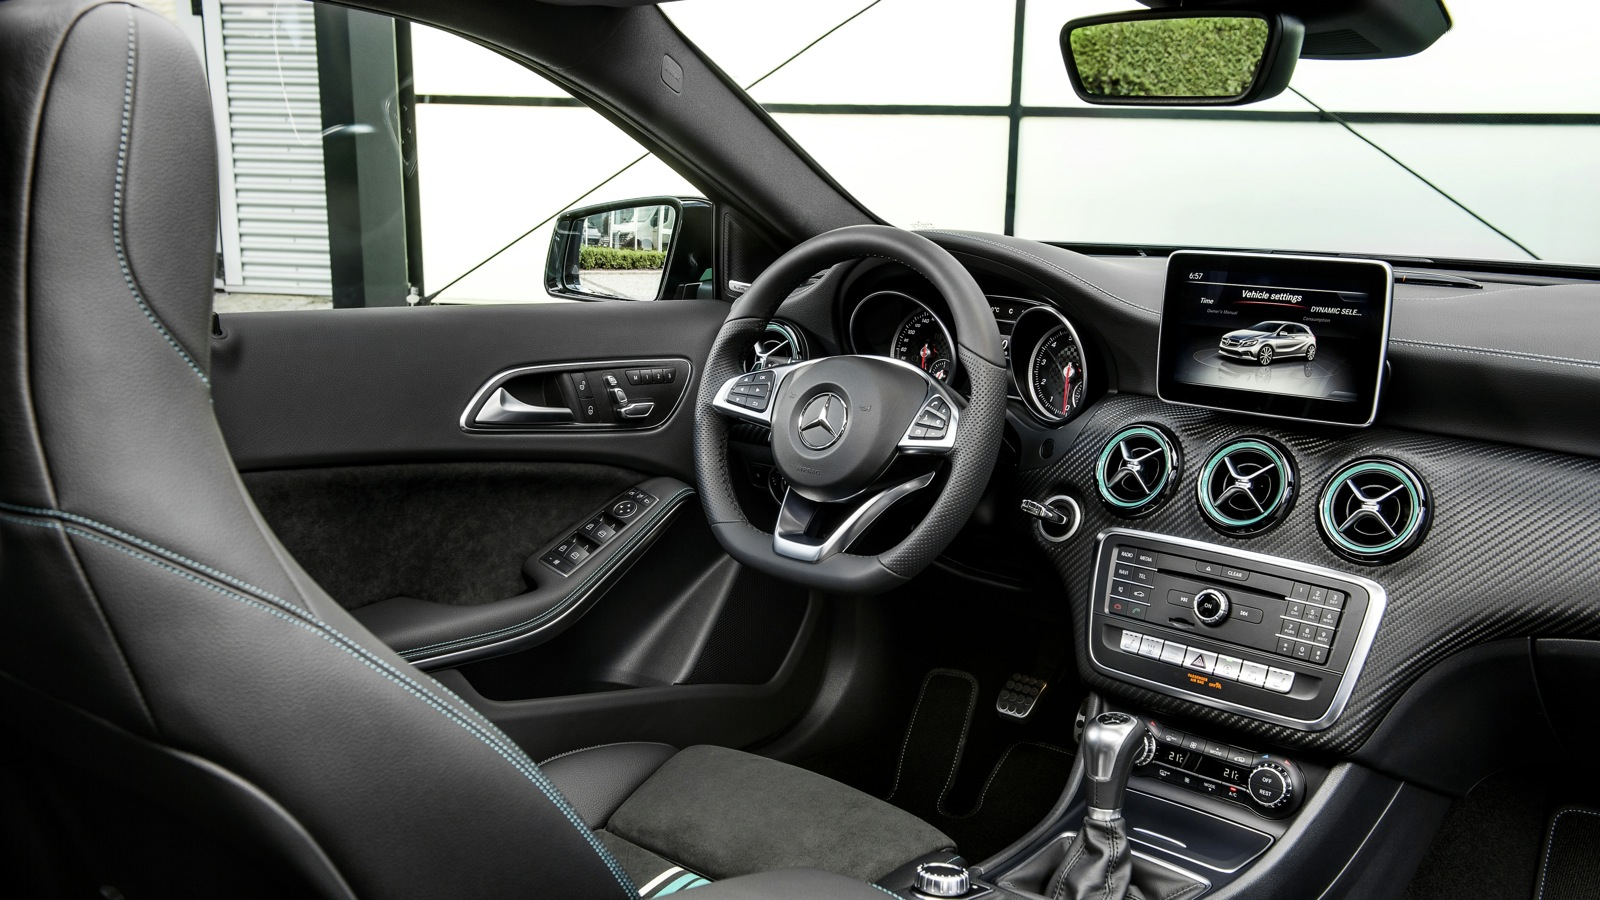 2016 mercedes benz a250 sport 4matic review motorsport. Black Bedroom Furniture Sets. Home Design Ideas